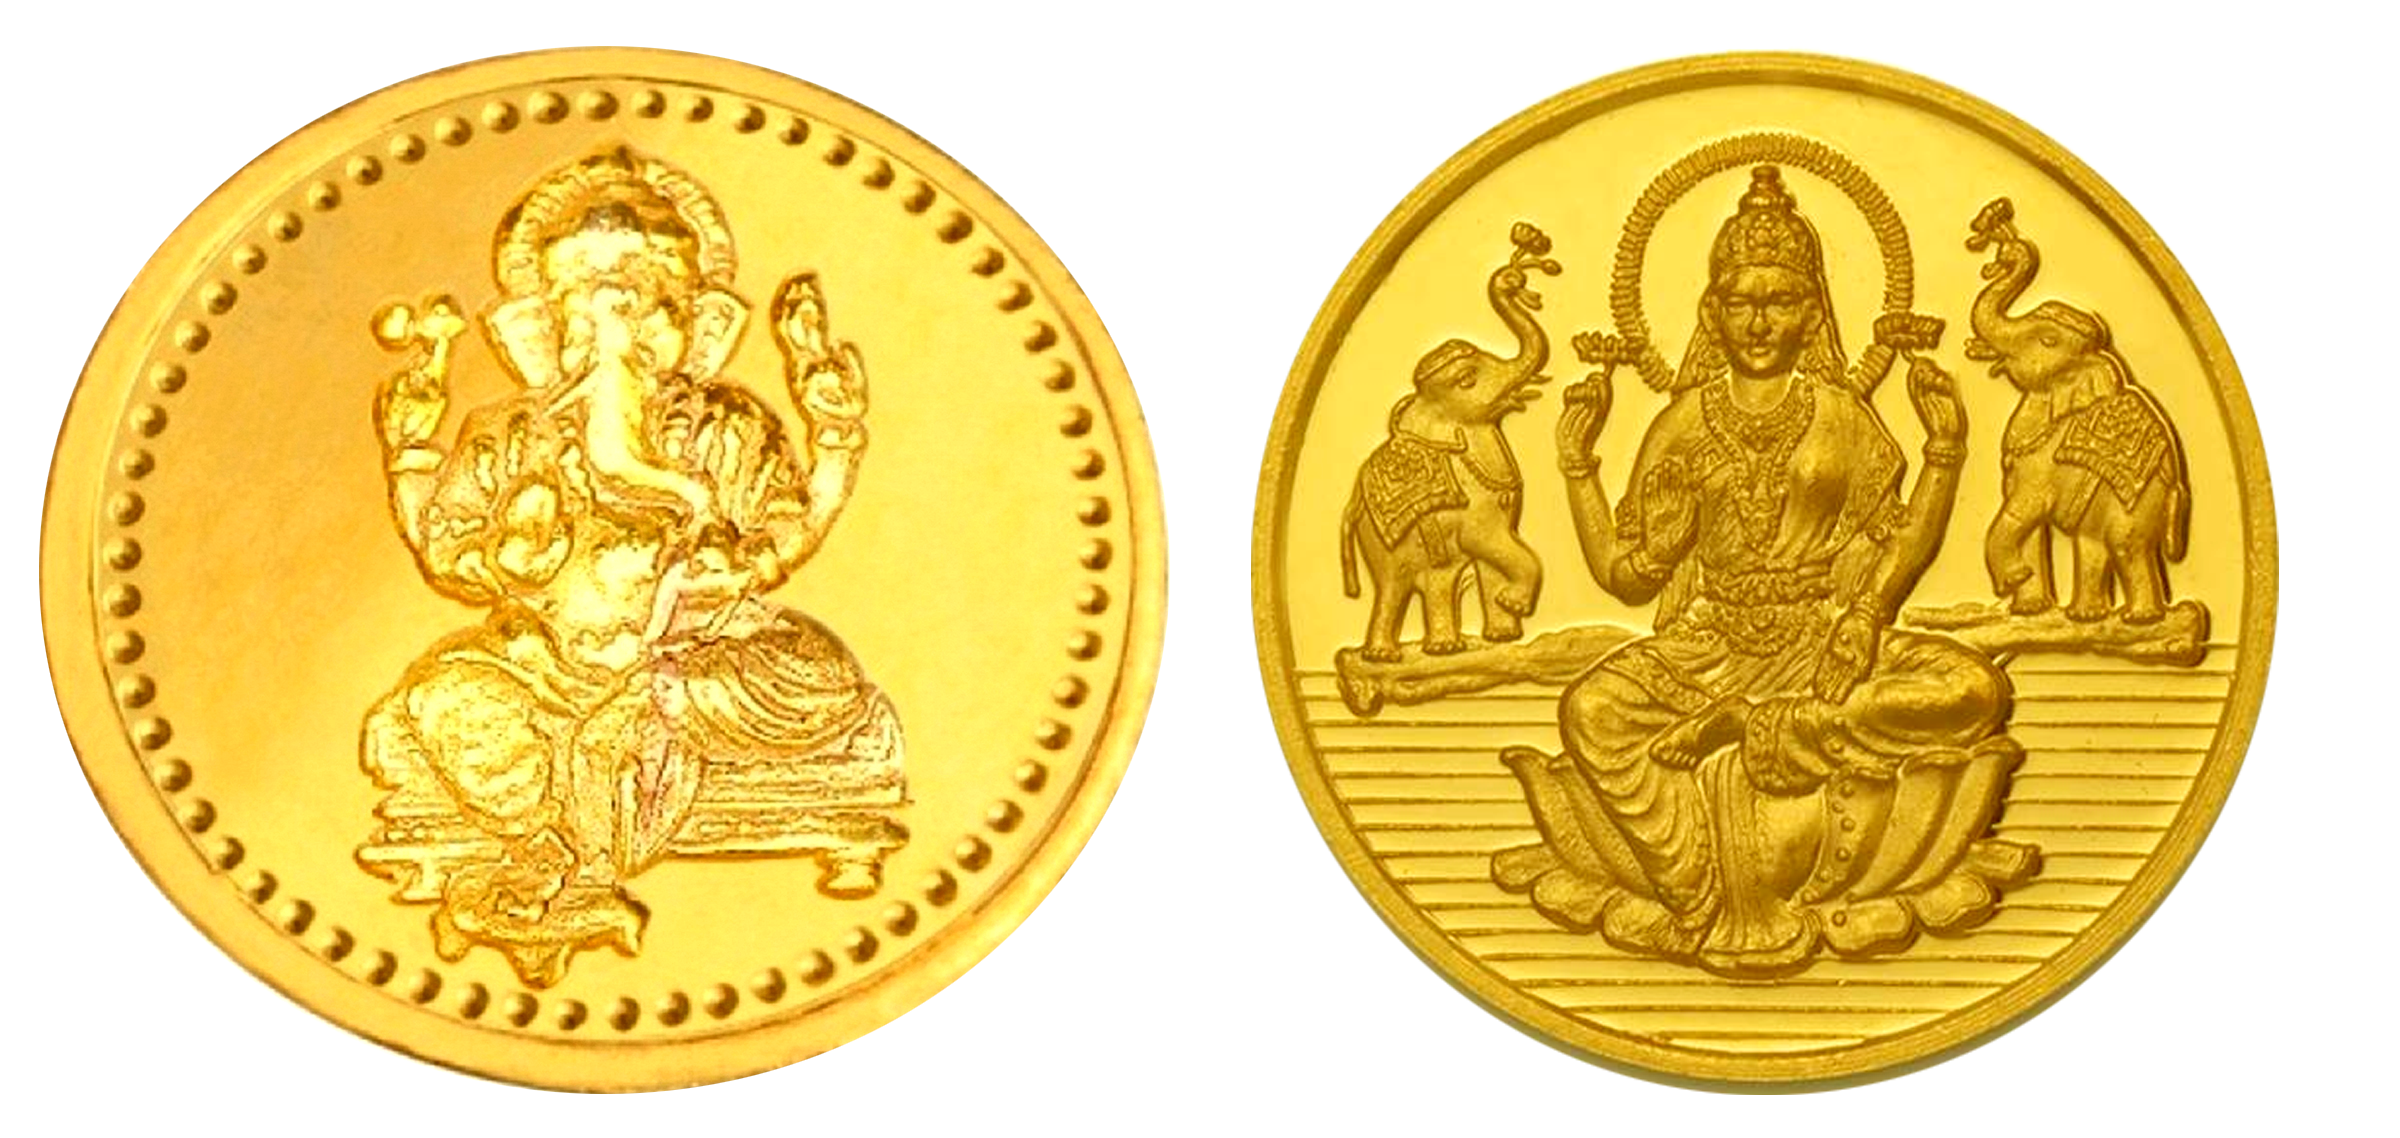 Laxmi and Ganesh images gold coin png - Coin HD PNG - Gold Coins PNG HD